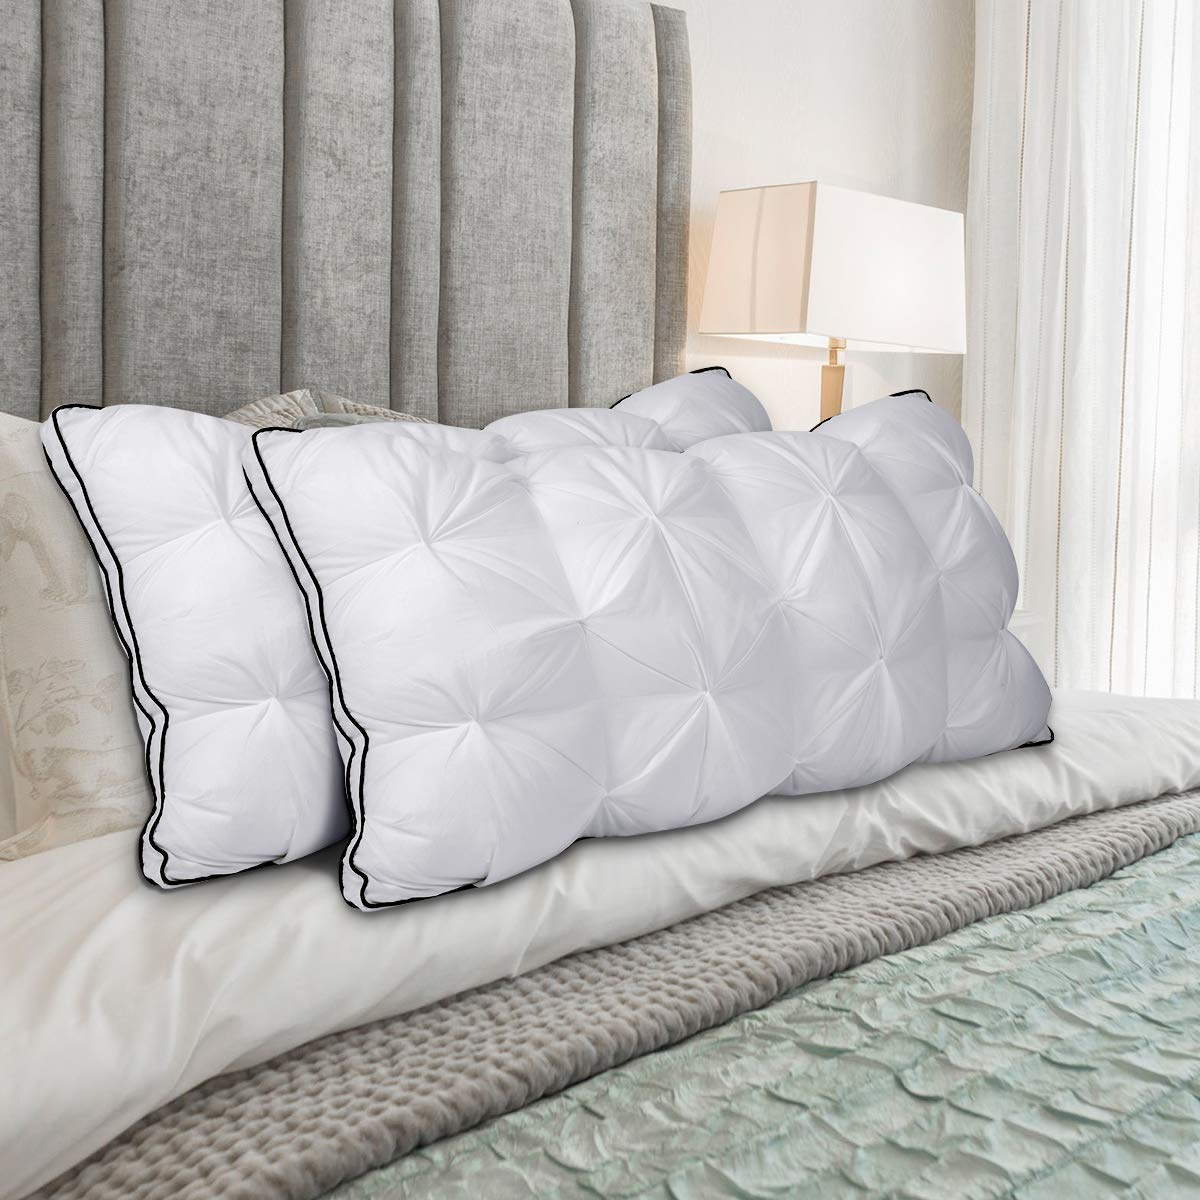 2 Pack Standard Size HOMEIDEAS Luxury Hotel Bed Pillow D01V286A Dust Mite Resistant /& Hypoallergenic Super Soft Plush Fiber Fill Twisted Design Alternative Bed Pillows for Sleeping No Flat!